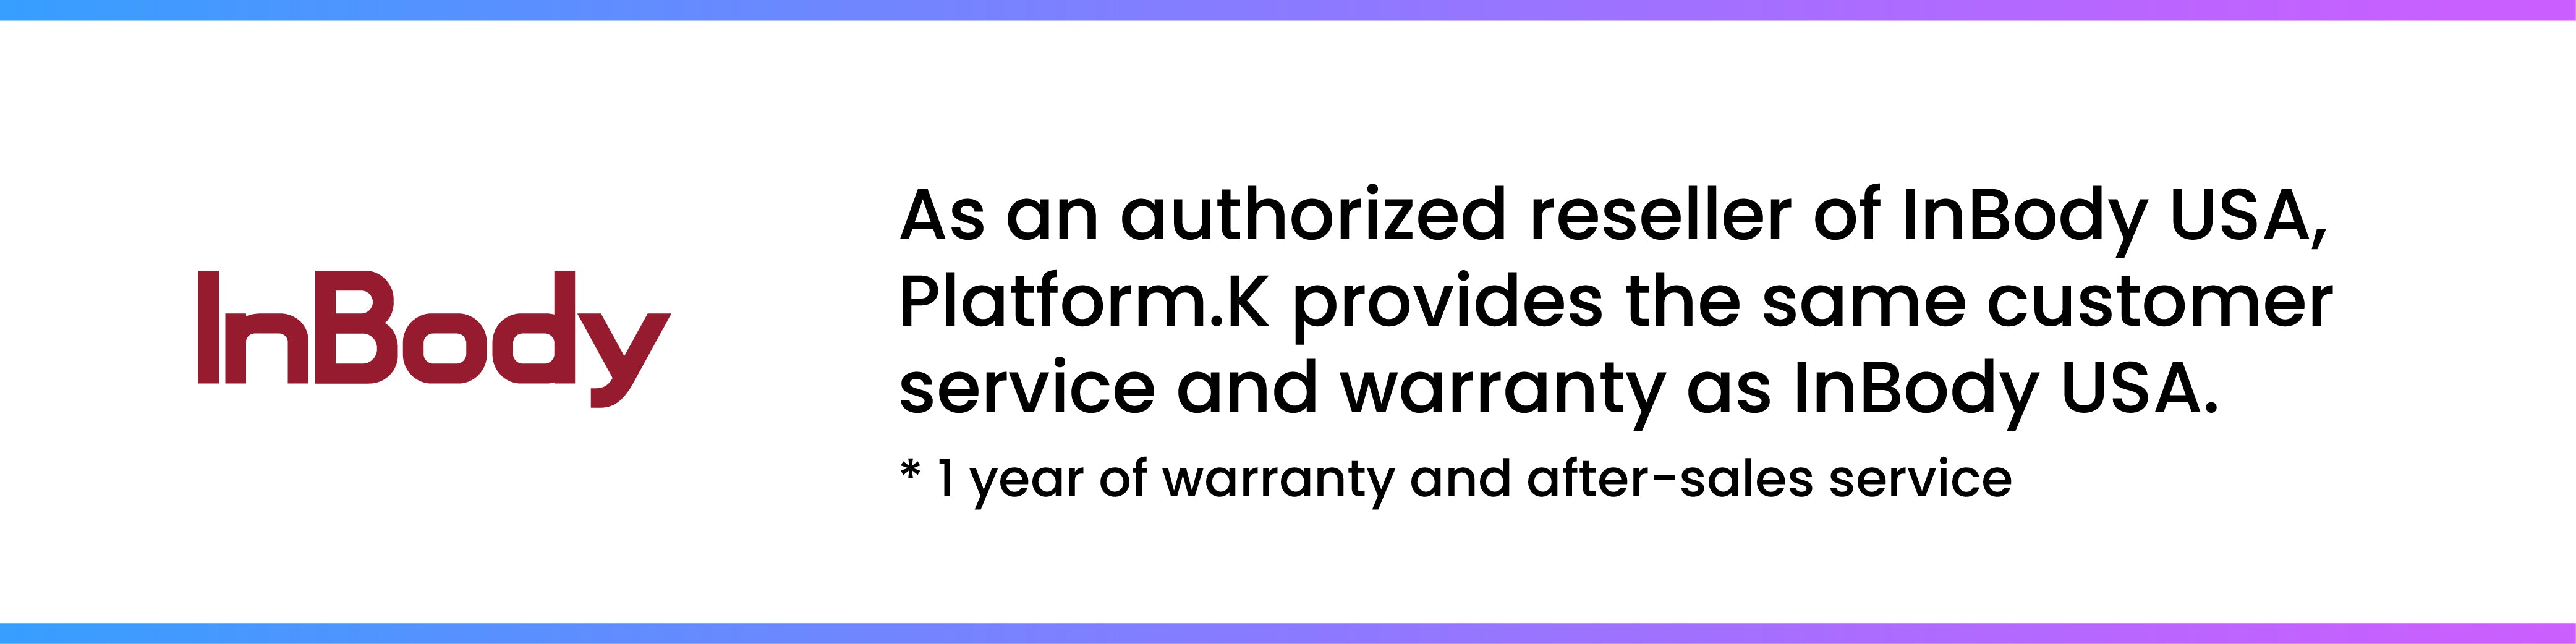 Platform.K is an authorized reseller of InBody